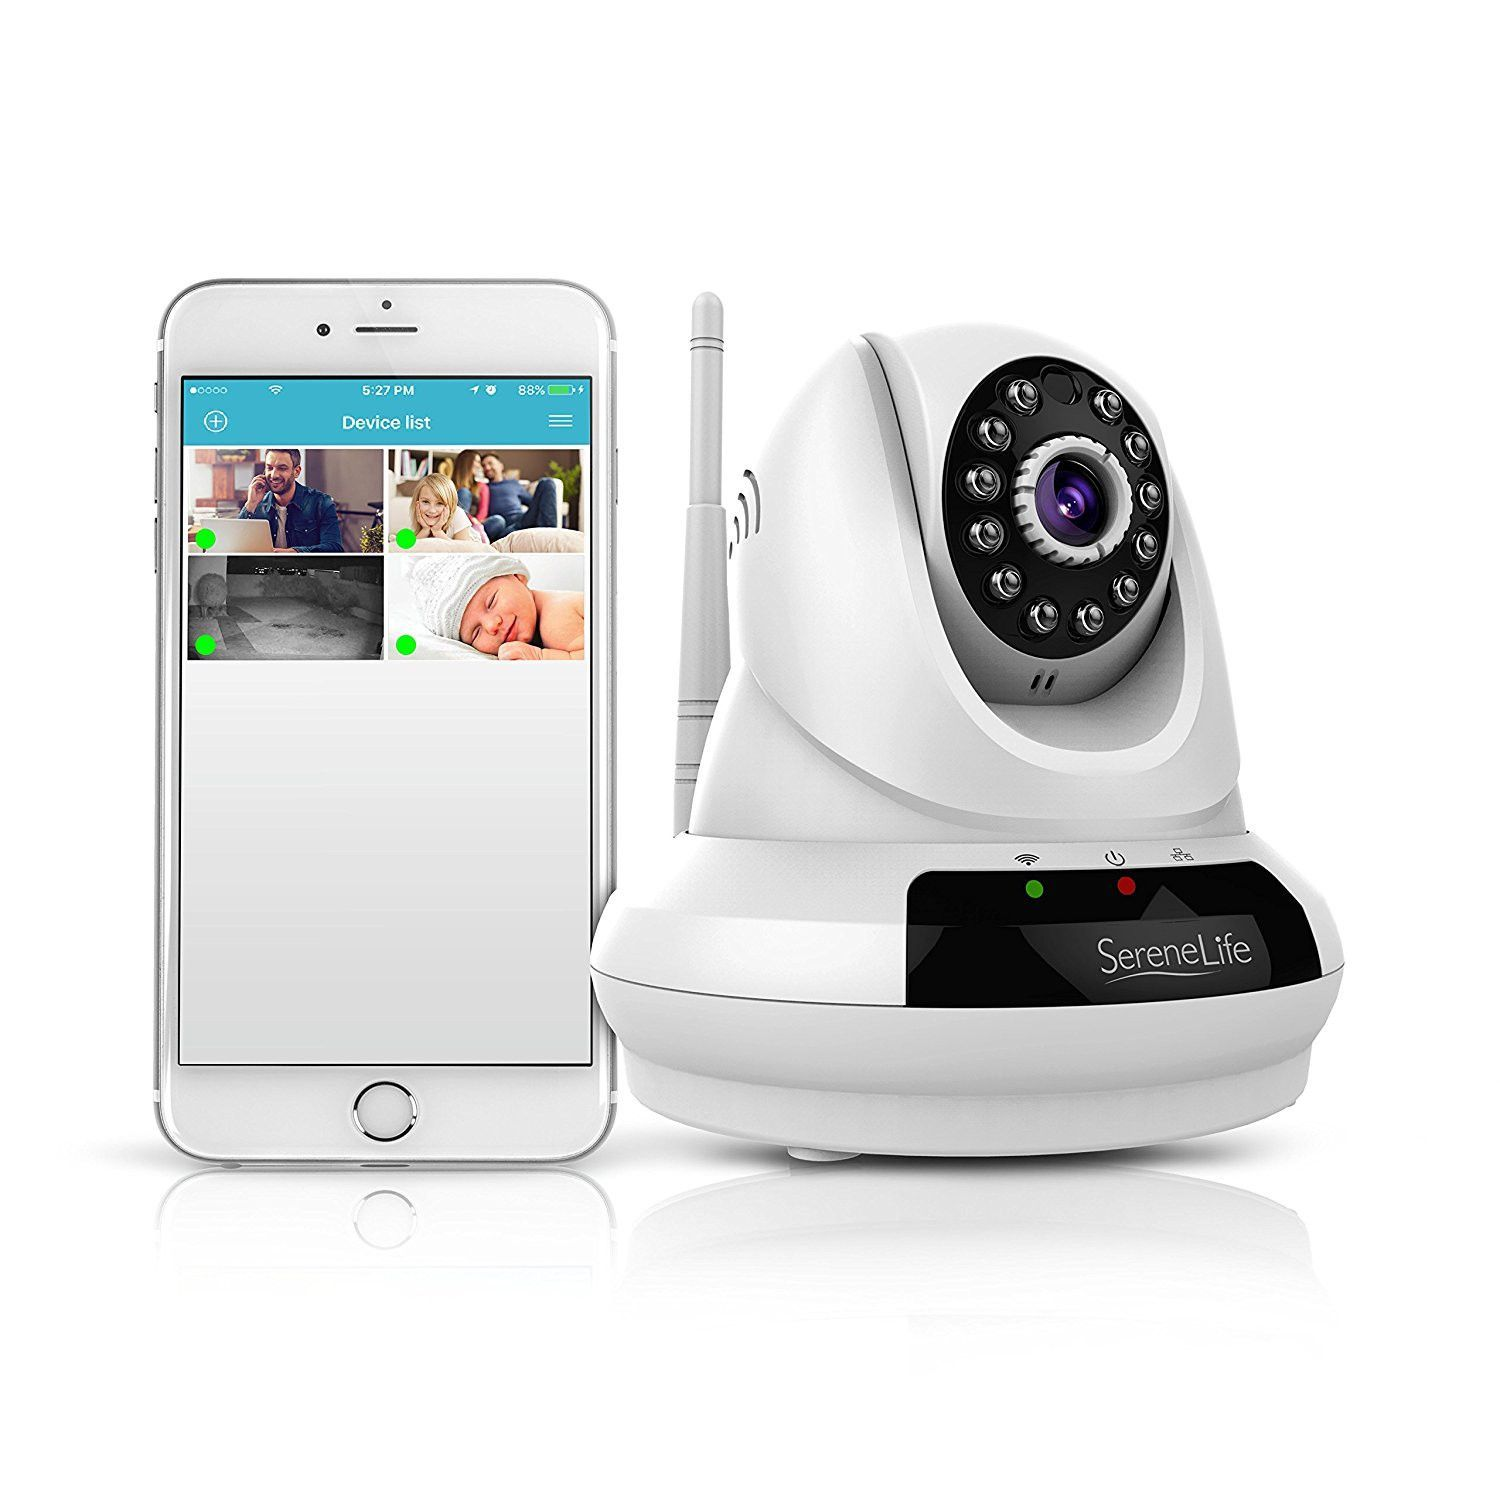 Serenelife Wireless Home Security 720p Hd Ip Camera With Remote Access Mobile Ap Security Cameras For Home Wireless Home Security Systems Home Security Systems